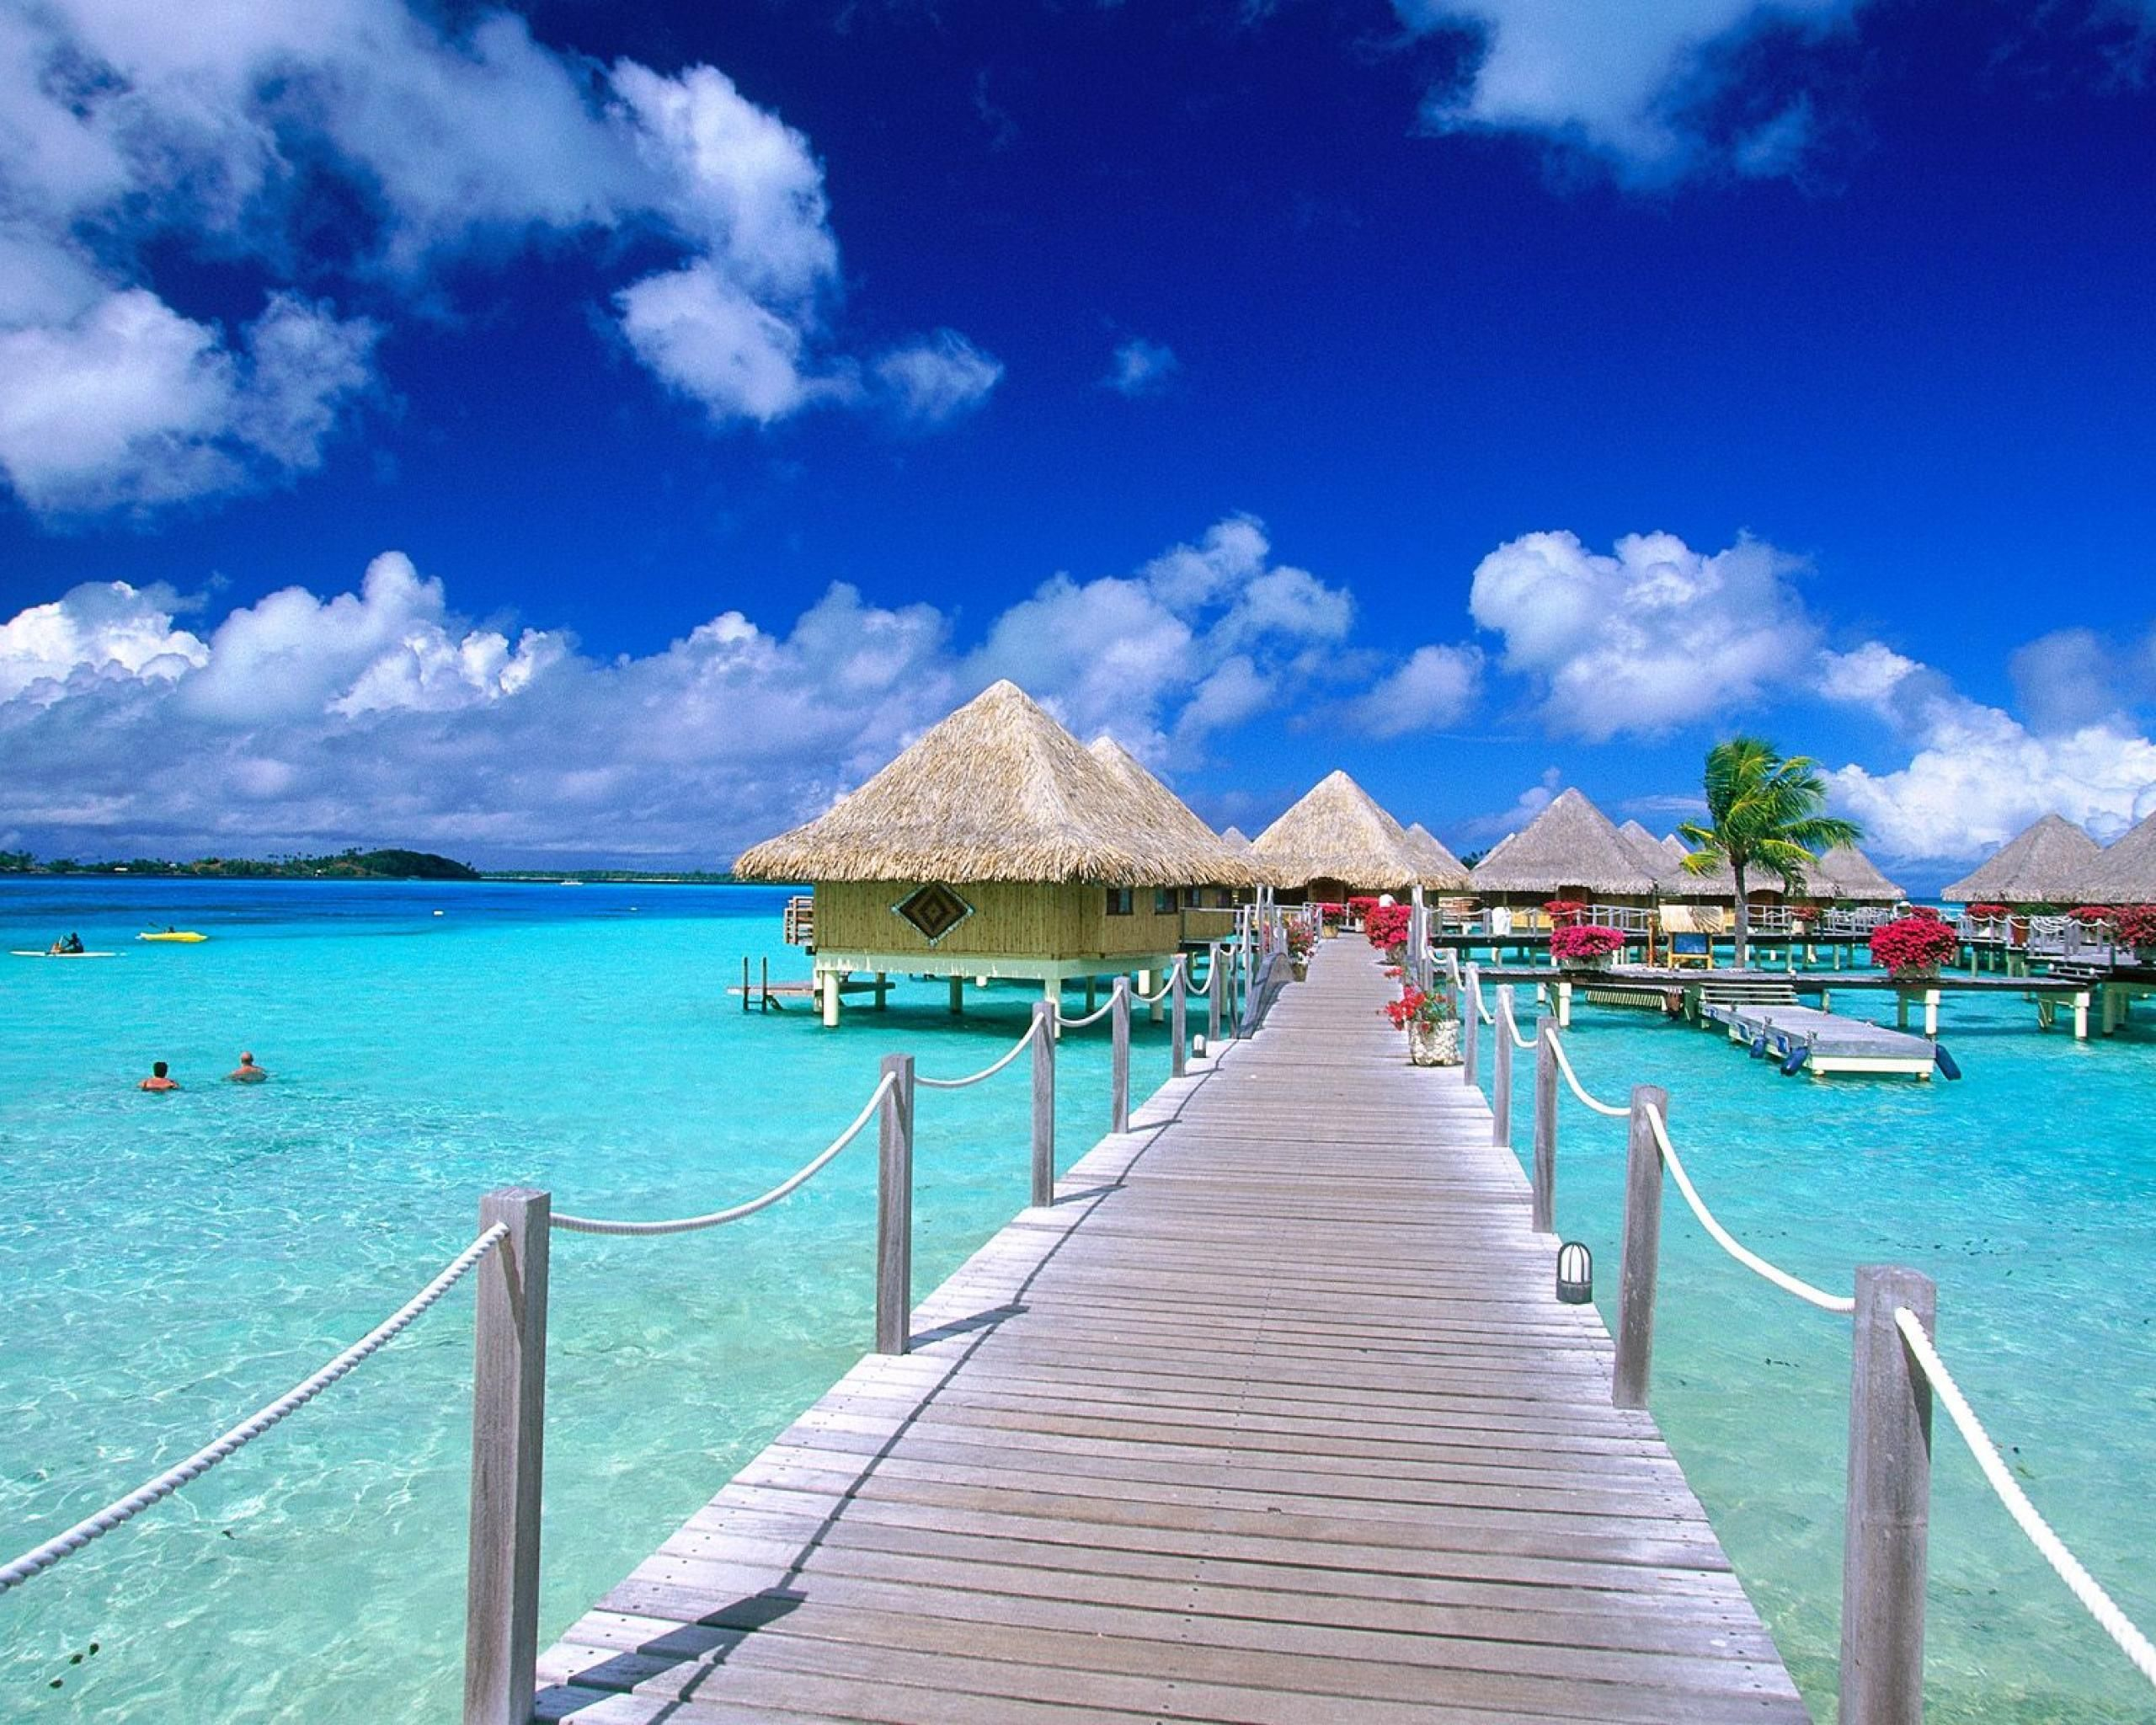 Bora Bora - They have houses on the water!